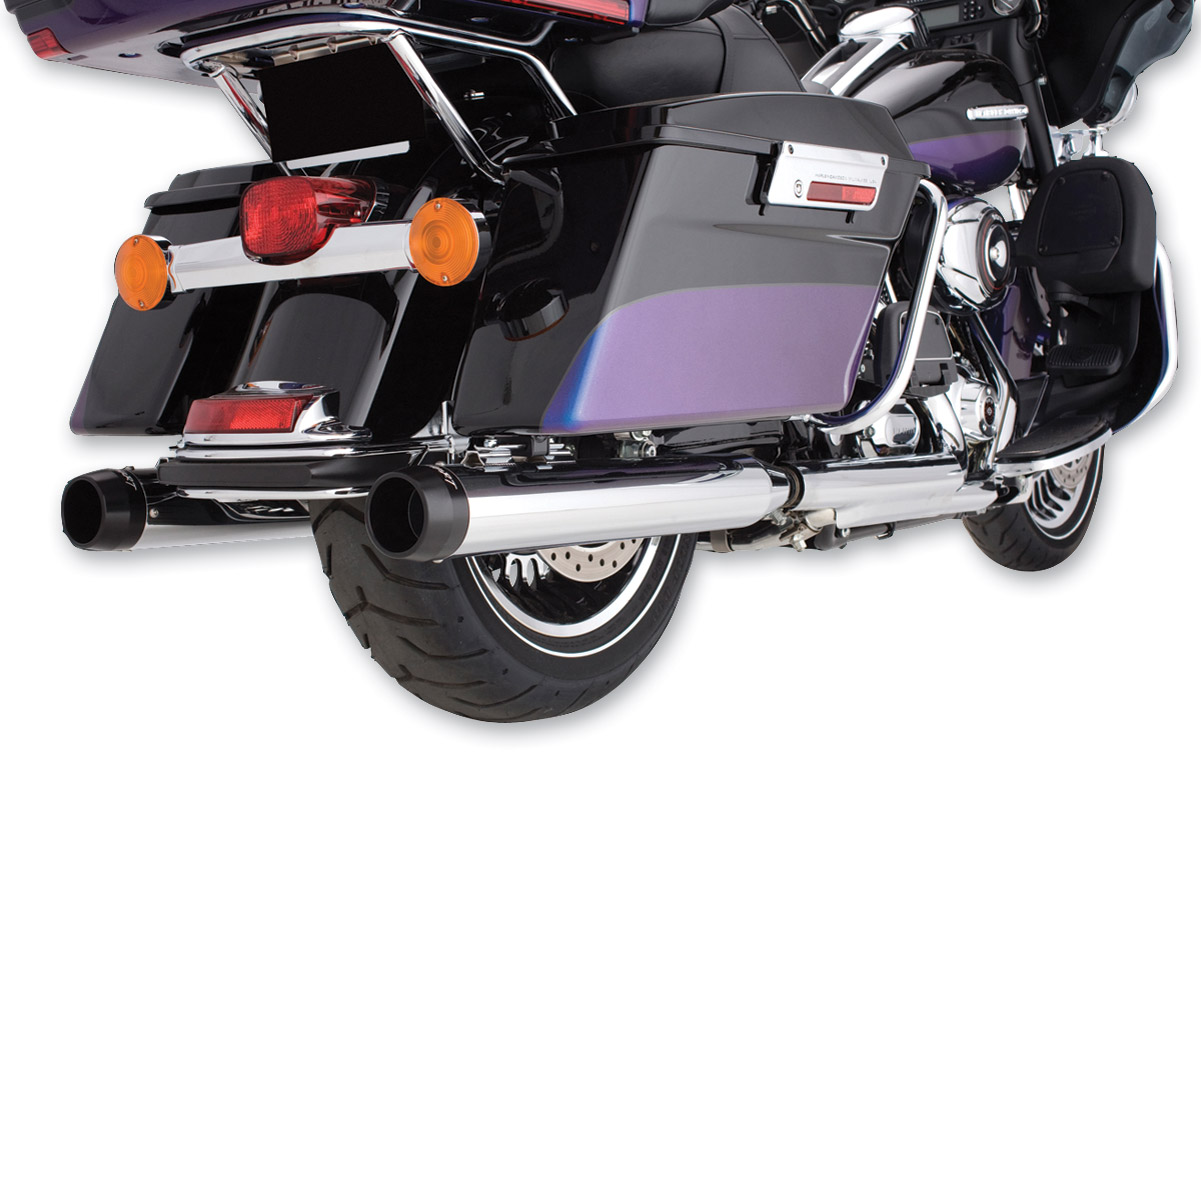 Rinehart Racing 4? Slip-On Mufflers Chrome w/ Black End Caps